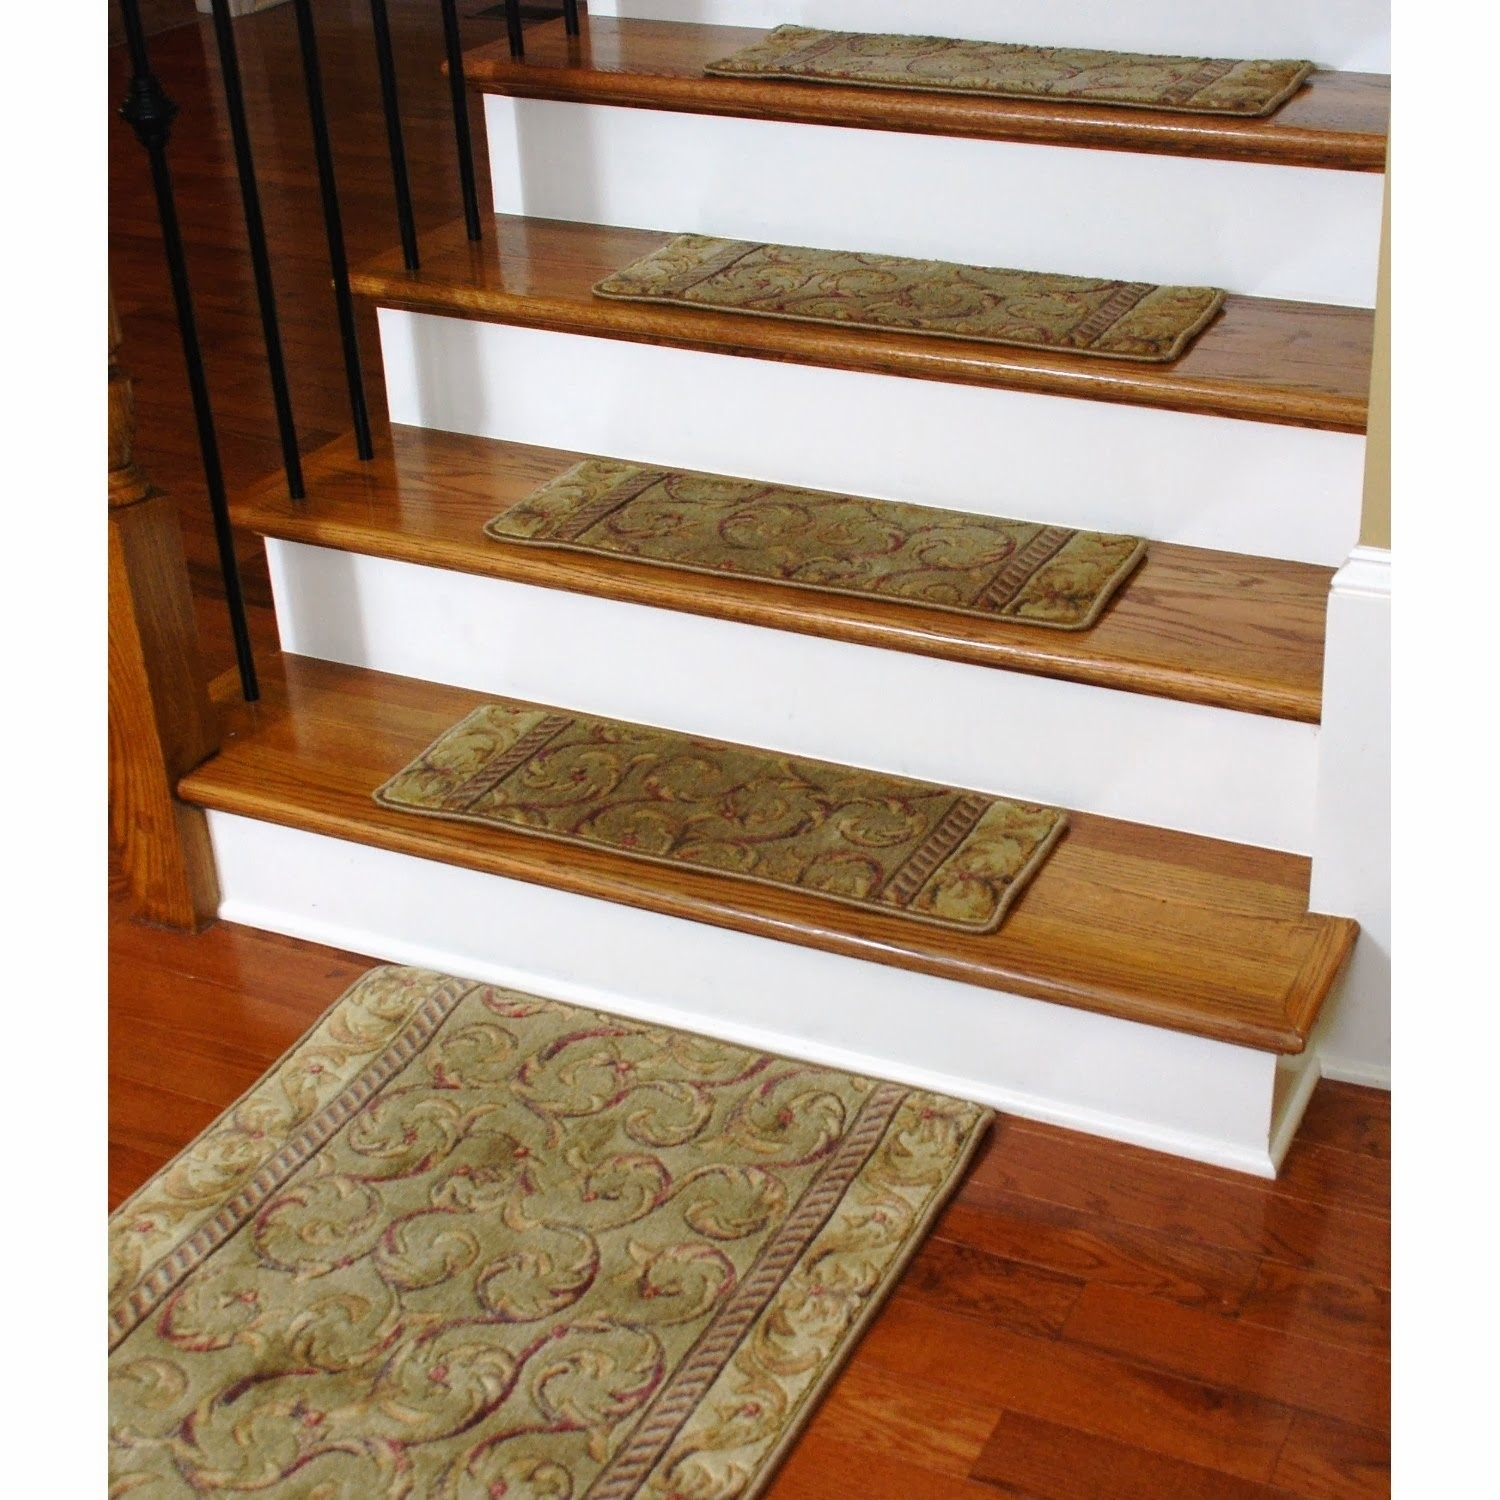 Stair Treads Carpet Stair Treads Carpet Carpets Collection With Stair Tread Rug Covers (Image 13 of 15)